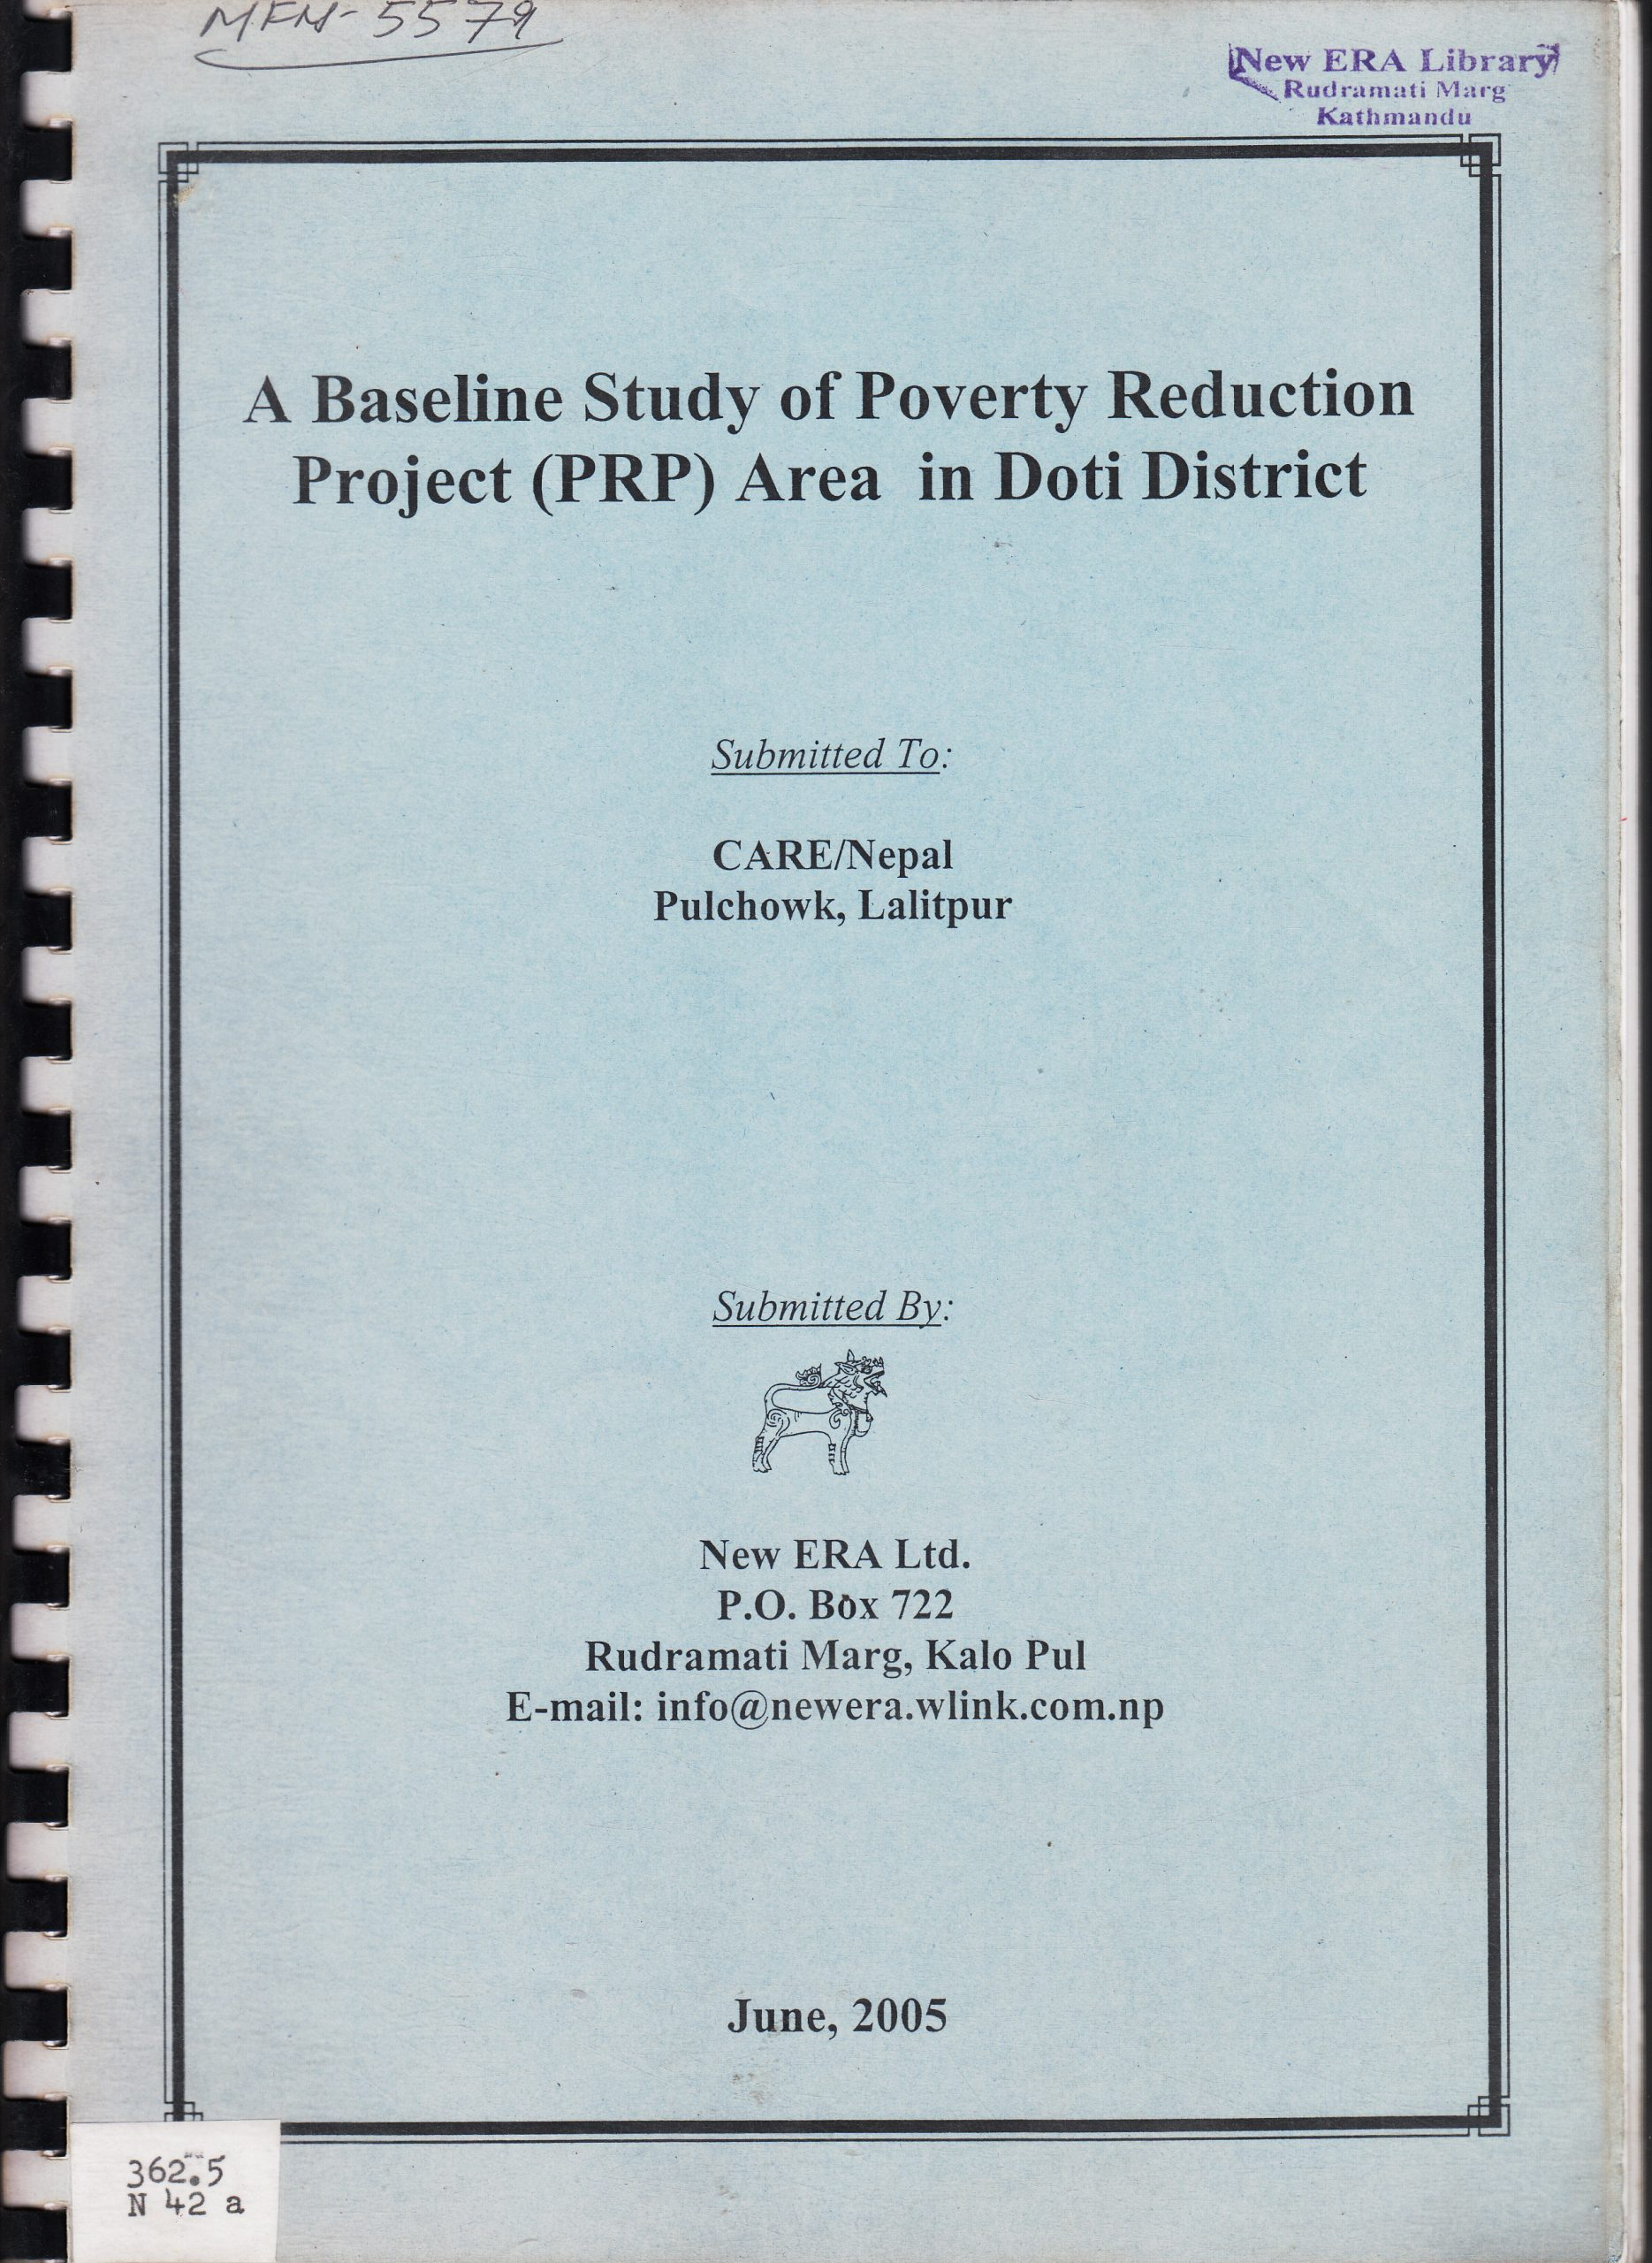 A Baseline Study of Poverty Reduction Project Area in Doti District